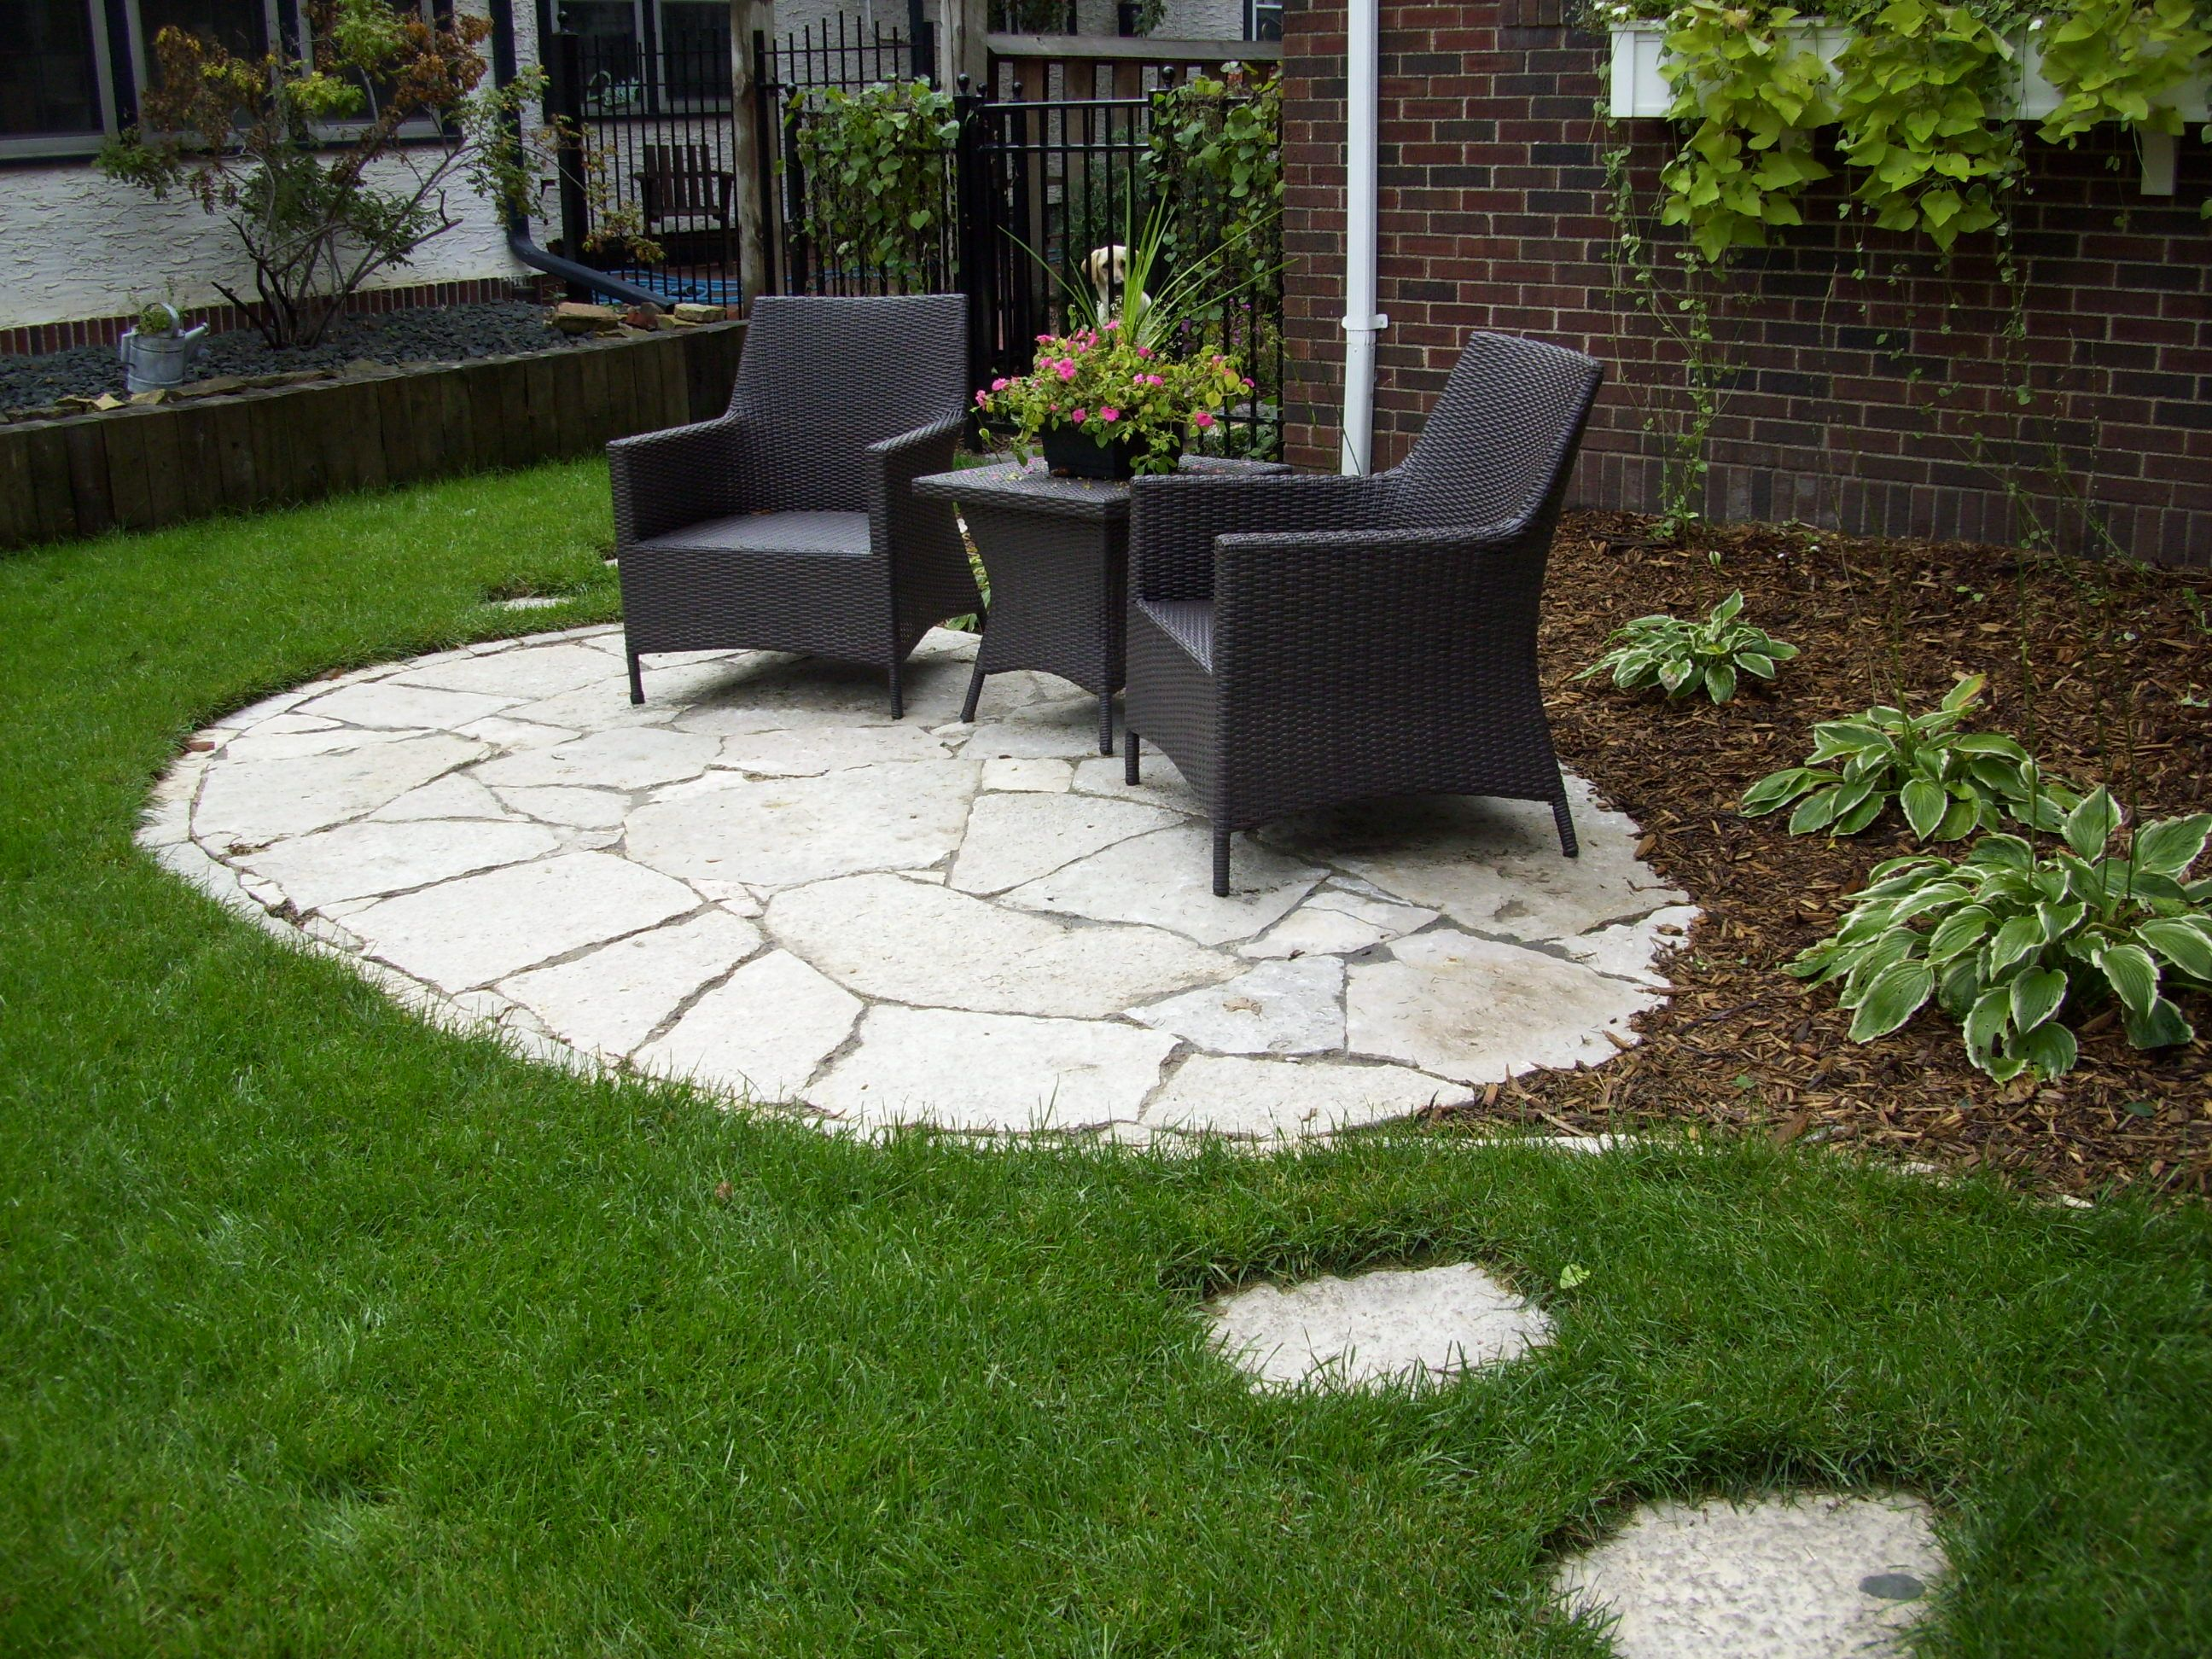 Stone Patio Design Ideas image of best paver patio designs simple design patio pavers 20 Creative Patiooutdoor Bar Ideas You Must Try At Your Backyard